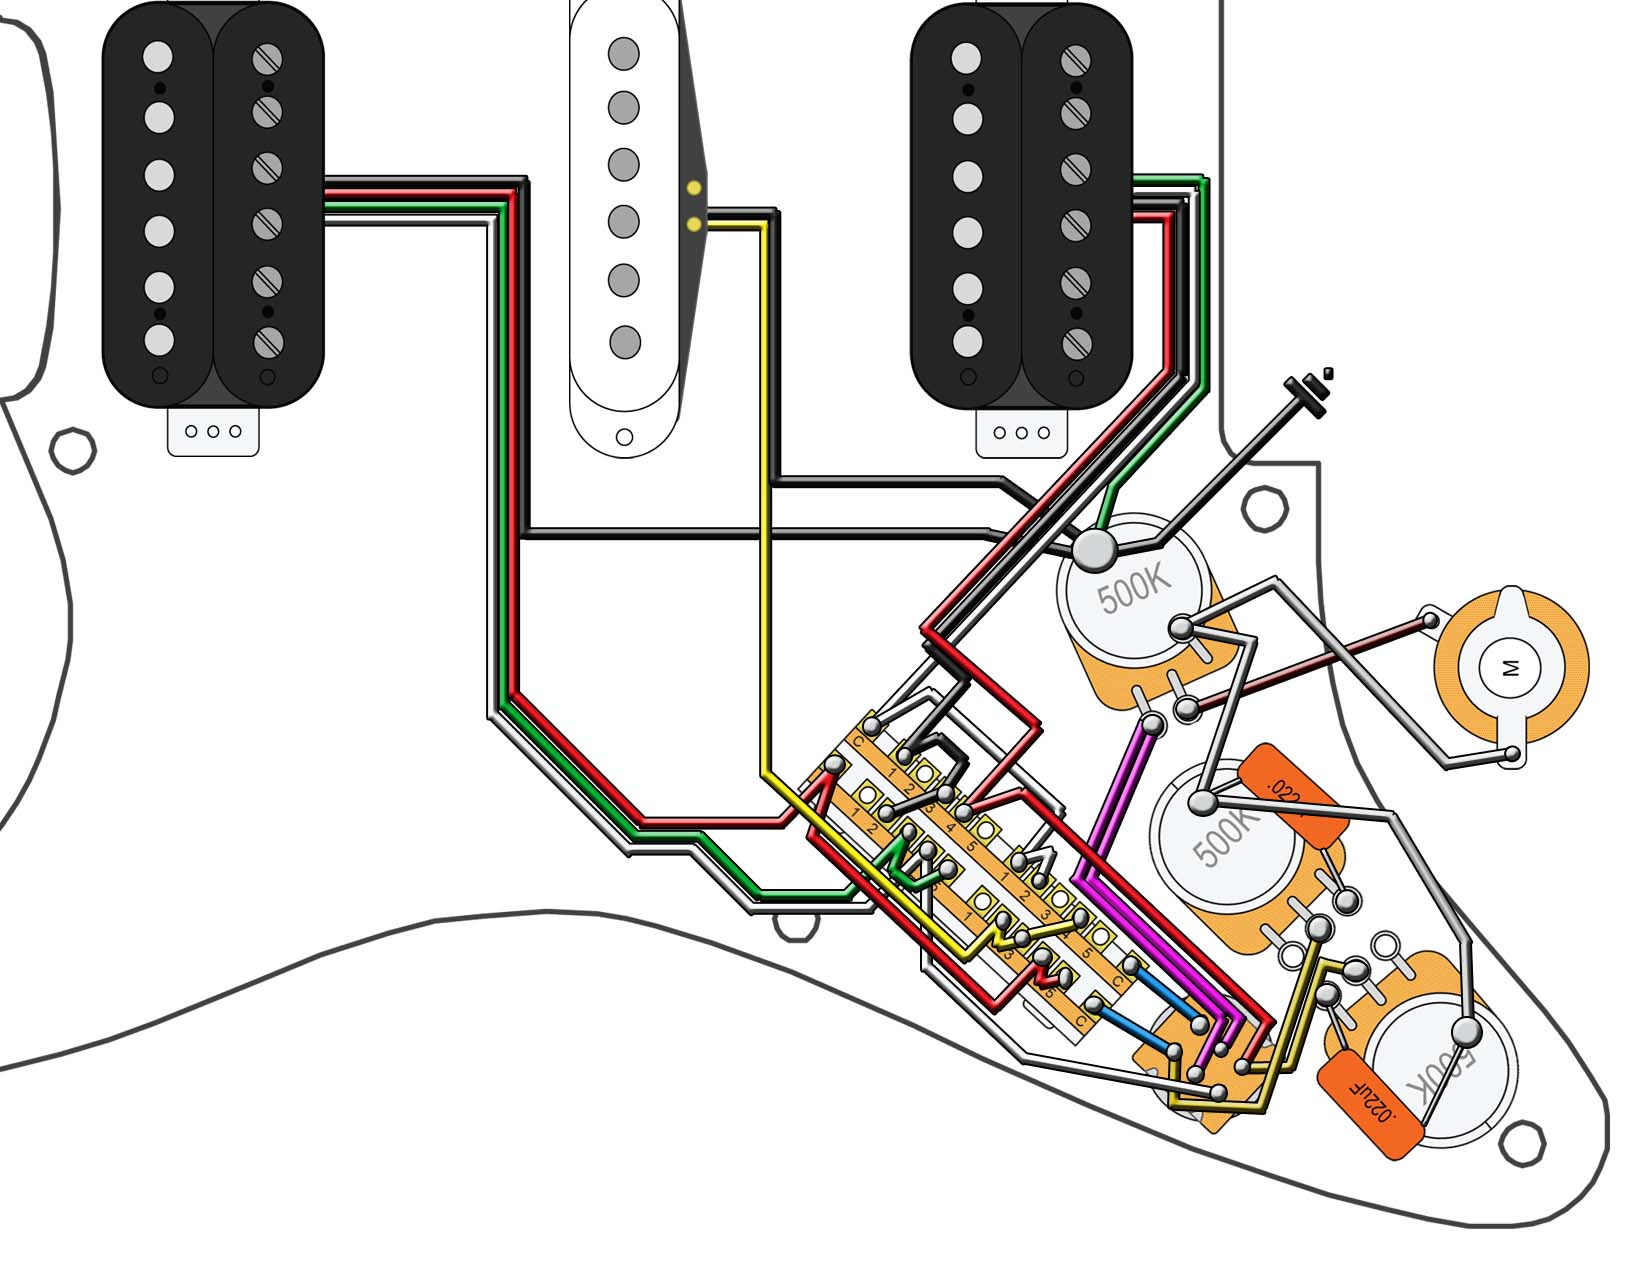 hight resolution of fender hsh wiring diagram wiring diagram sysfender hsh wiring diagram